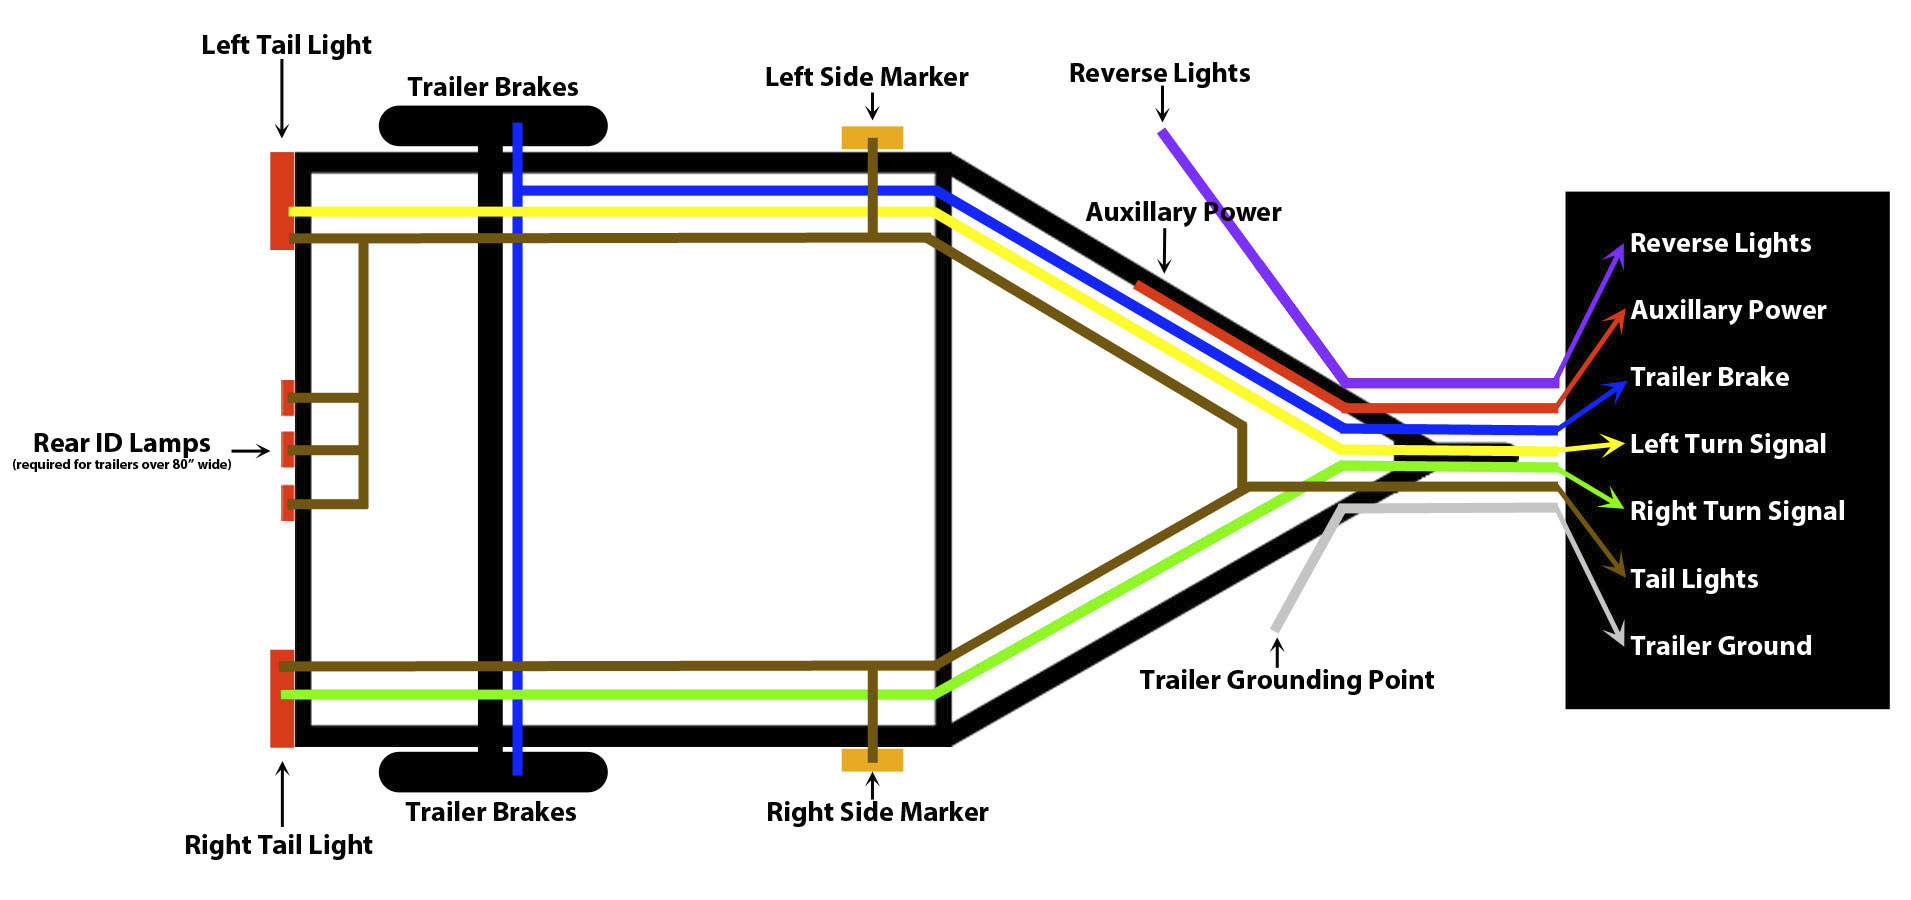 How To Wire Trailer Lights - Trailer Wiring Guide & Videos - Trailer Led Light Wiring Diagram